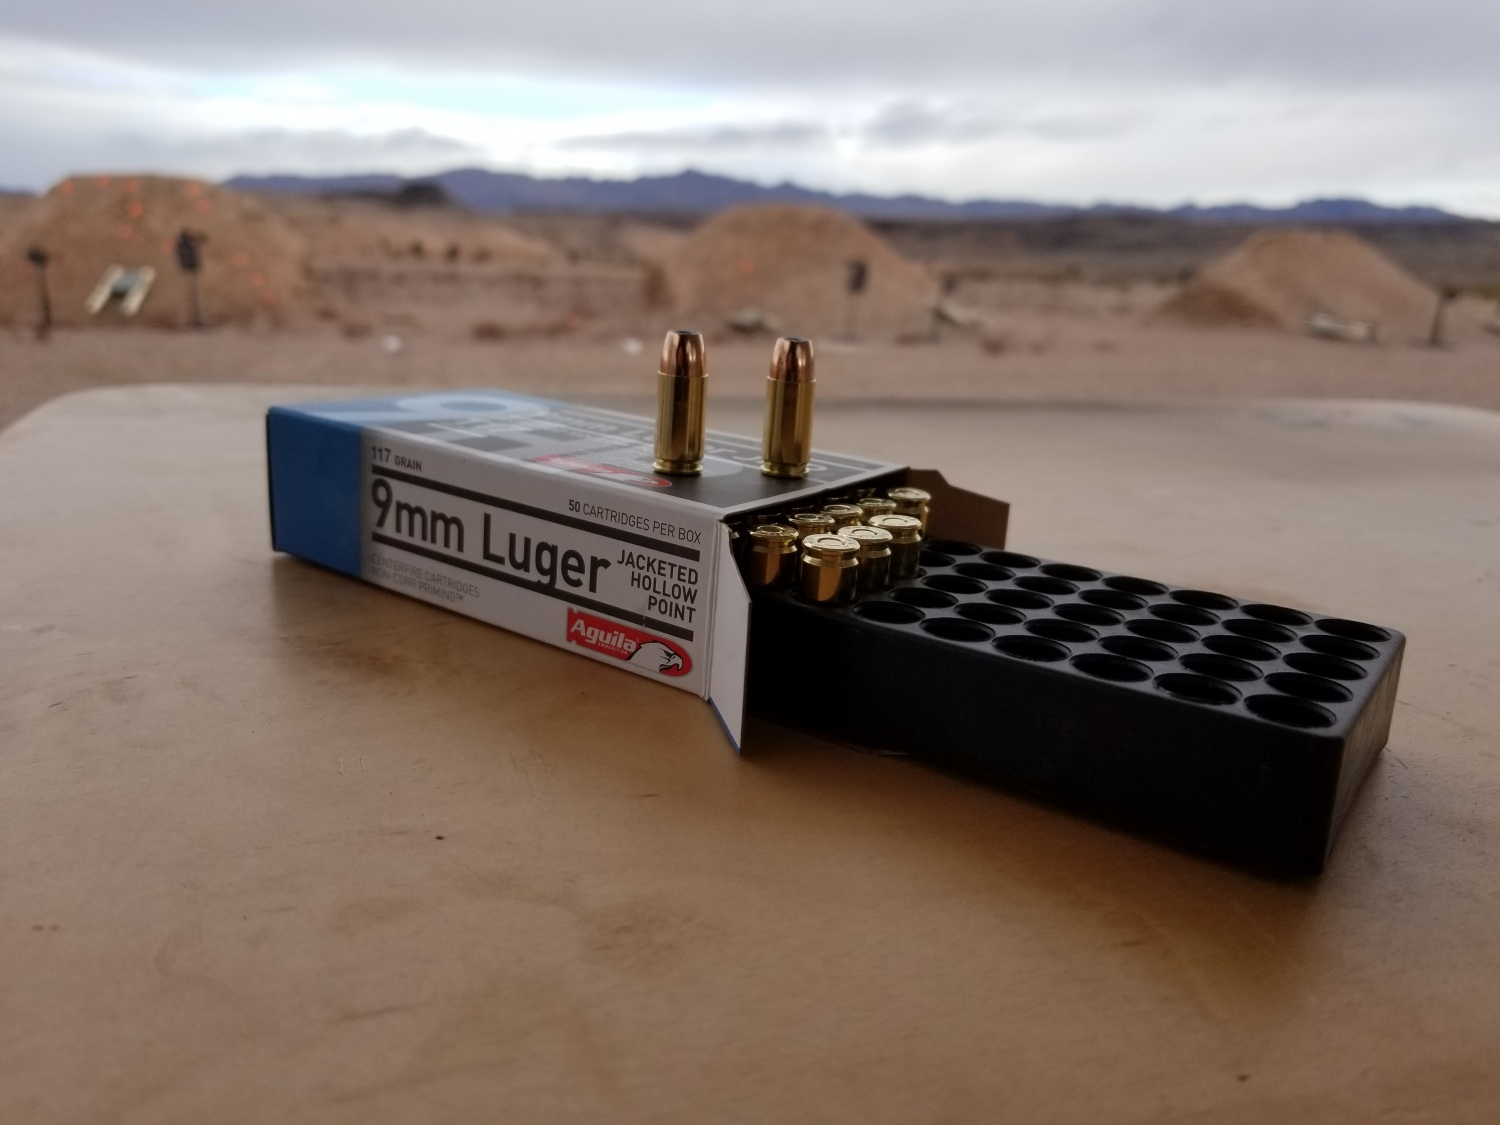 9MM LUGER 117 GRAIN JHP / JACKETED HOLLOW POINT